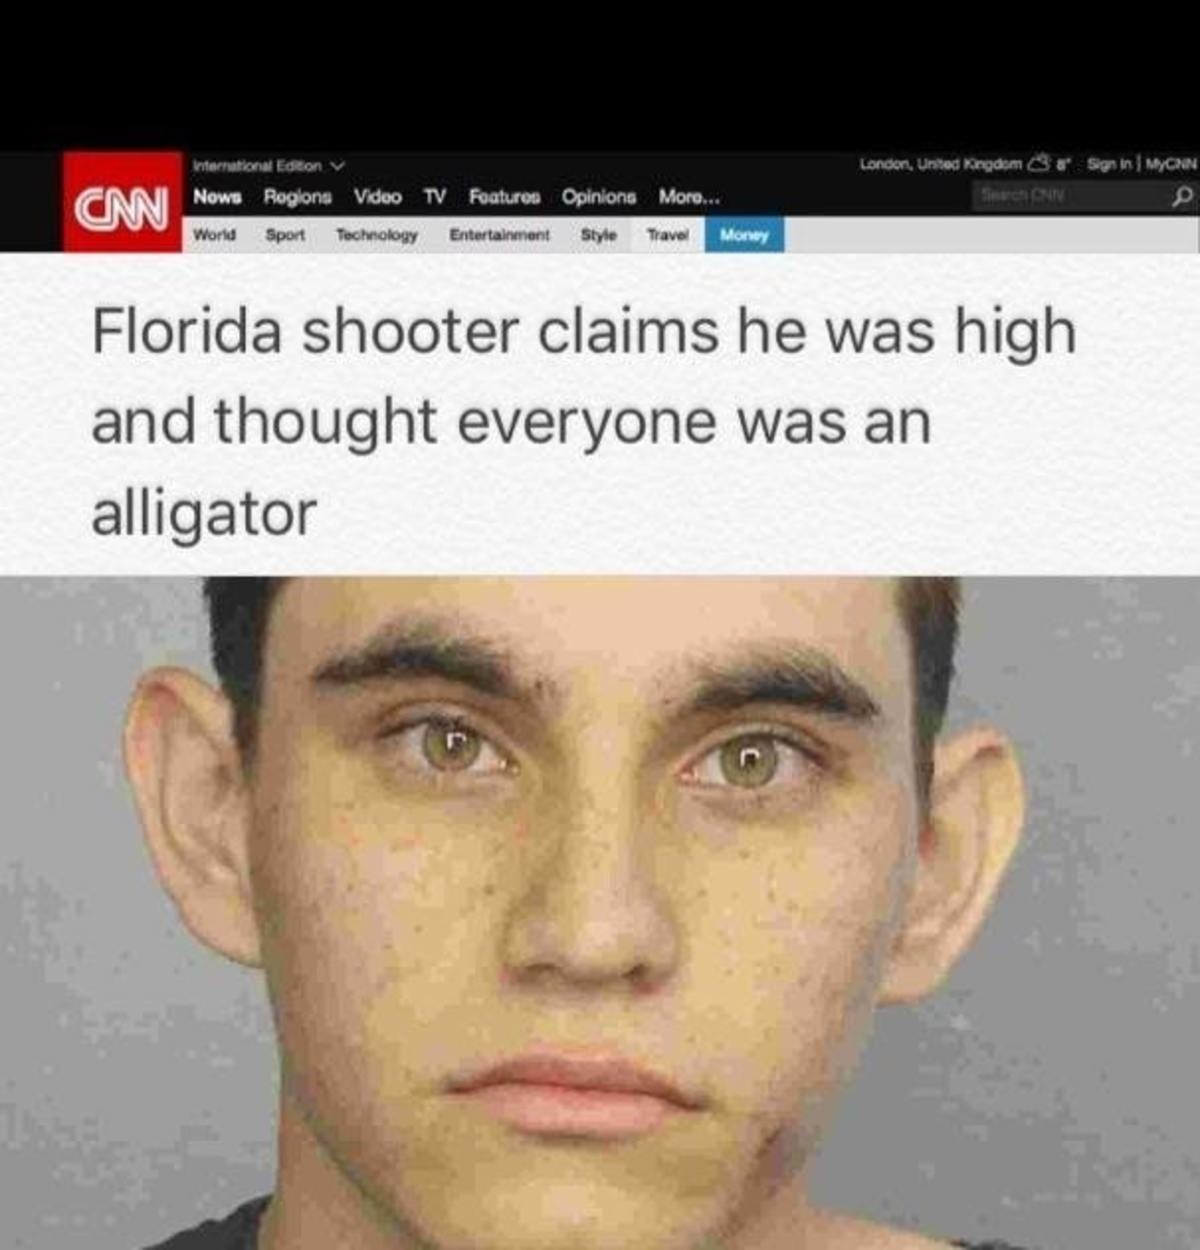 absorbed abject Partridge. . rft) g 'Juana l Florida shooter claims he 'ribbit, S. ii. i] ', thought '' was an alligator. That's impossible. Drugs are illegal. Making something illegal makes it disappear.